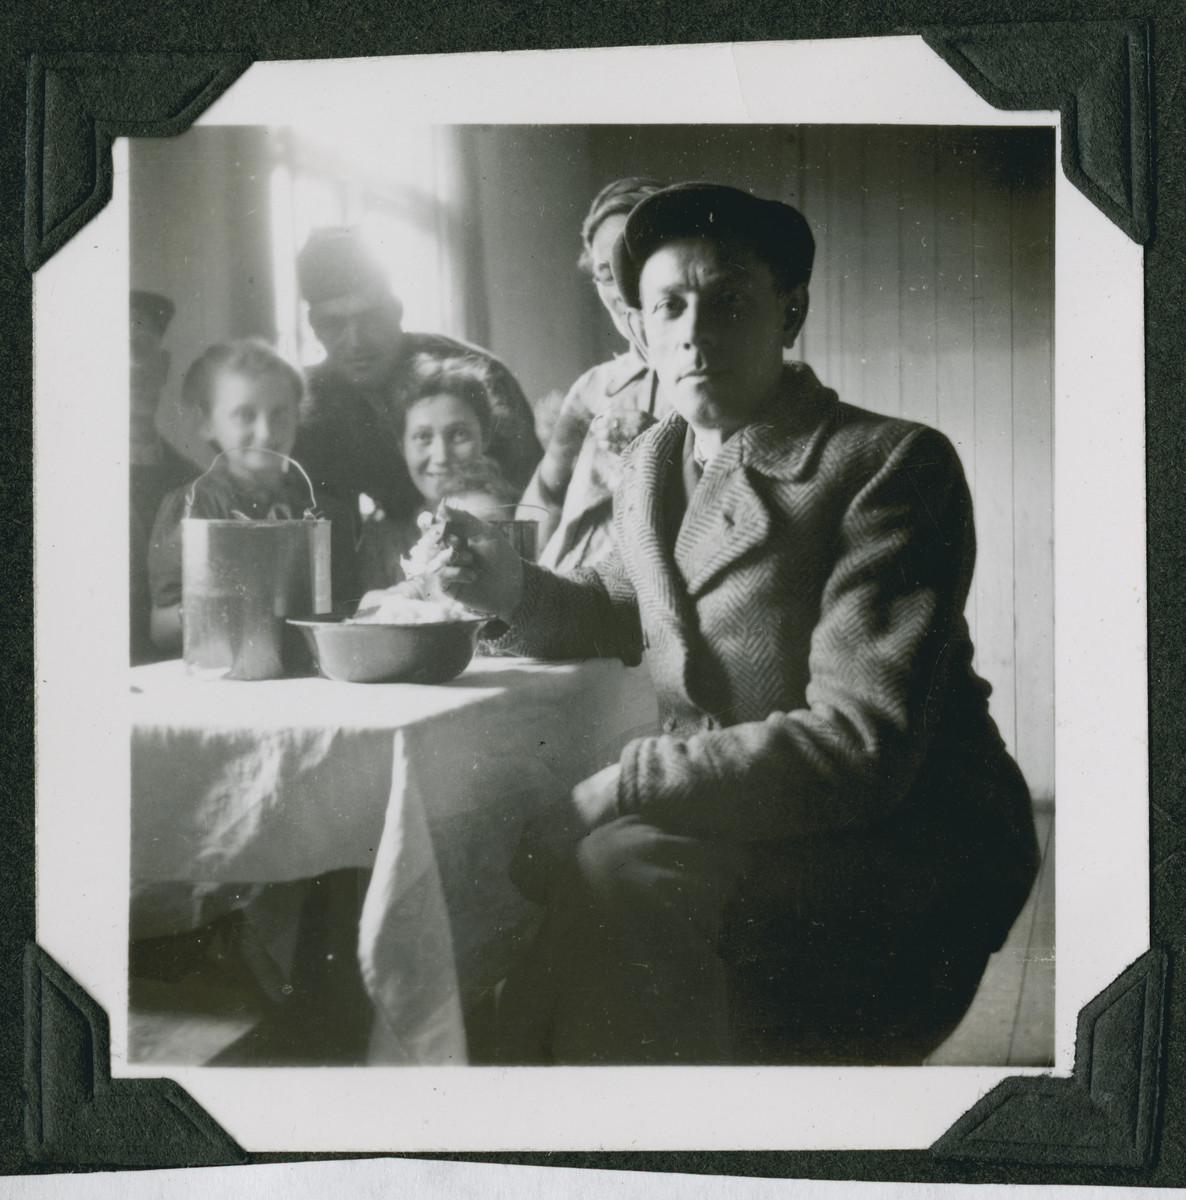 A Jewish family eats its meal in a barrack in the Ziegenhain displaced persons camp.